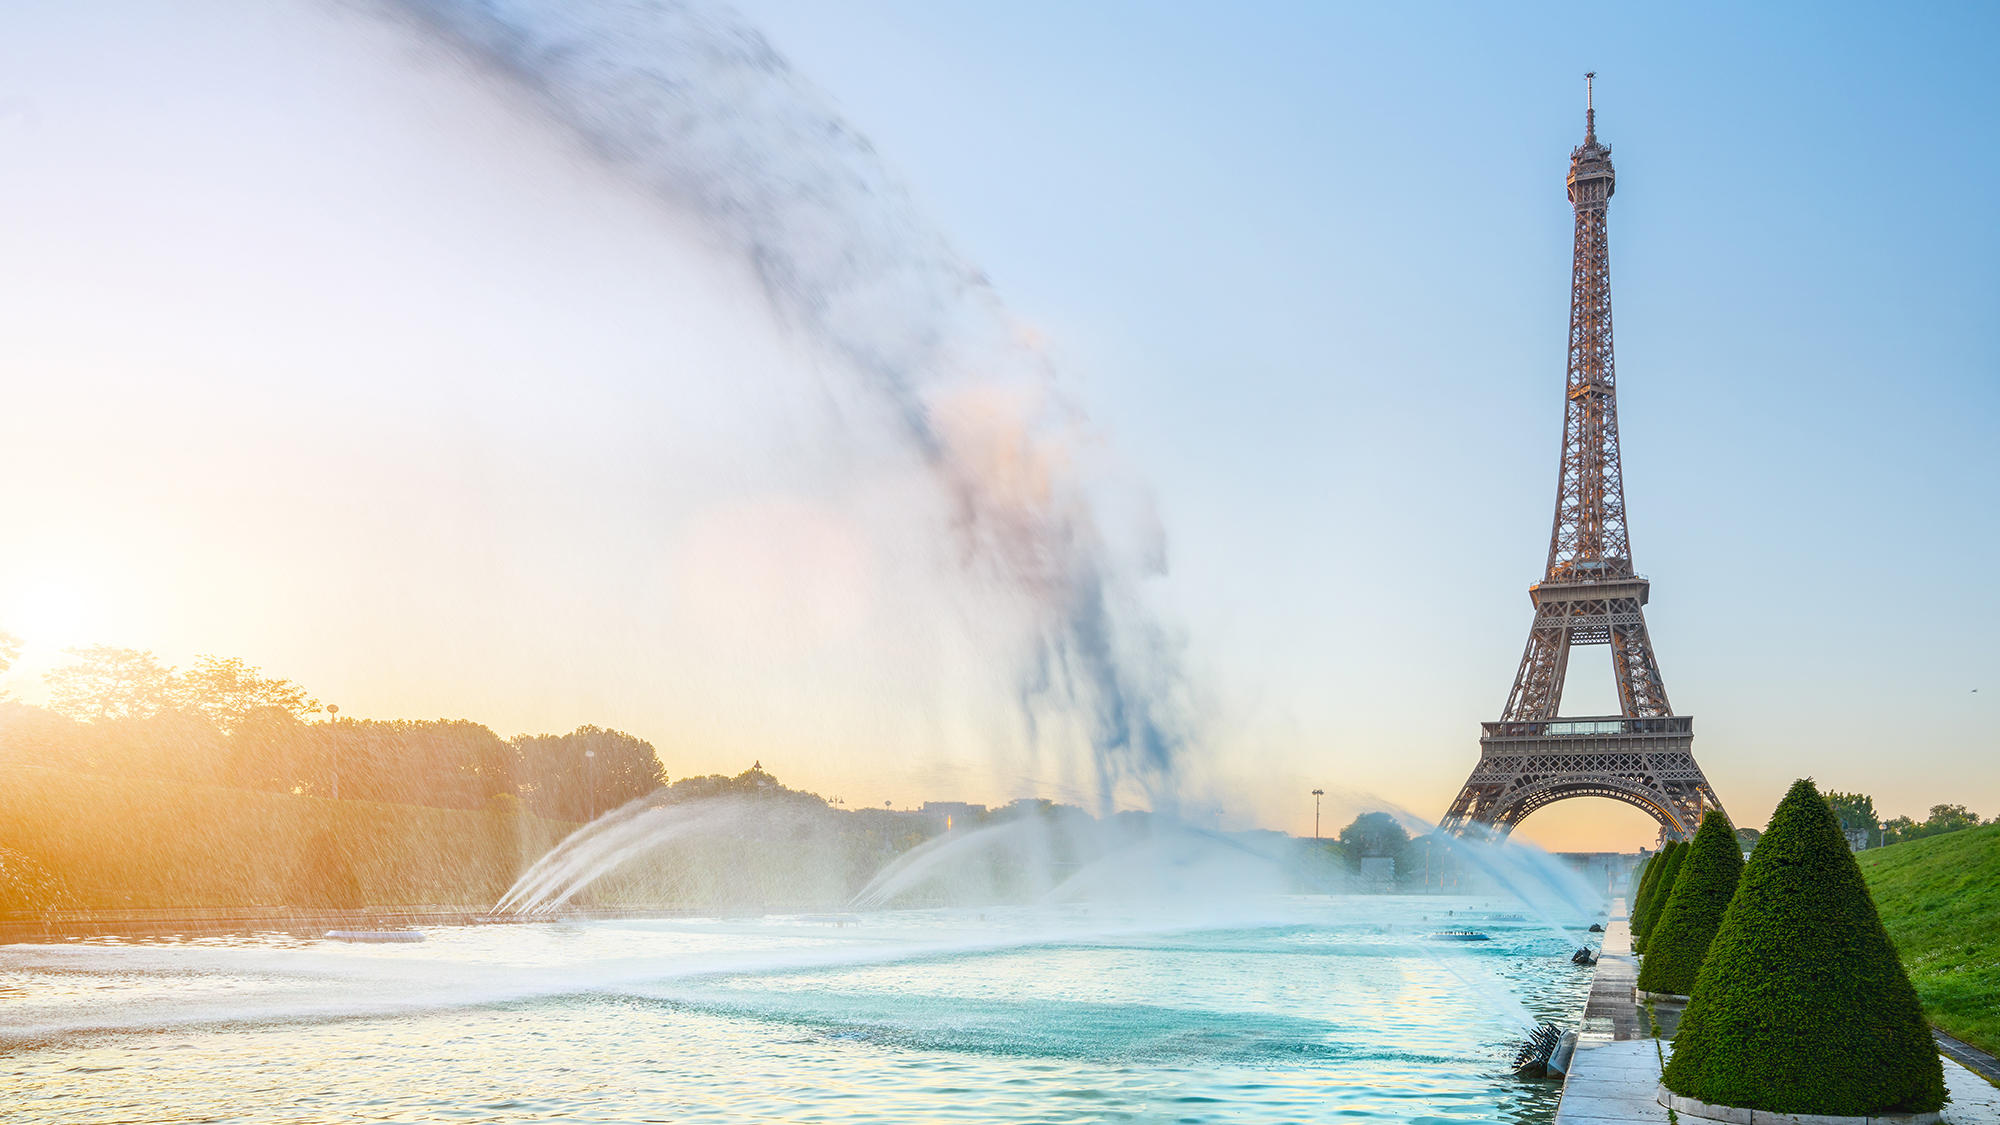 Eiffel tower and water